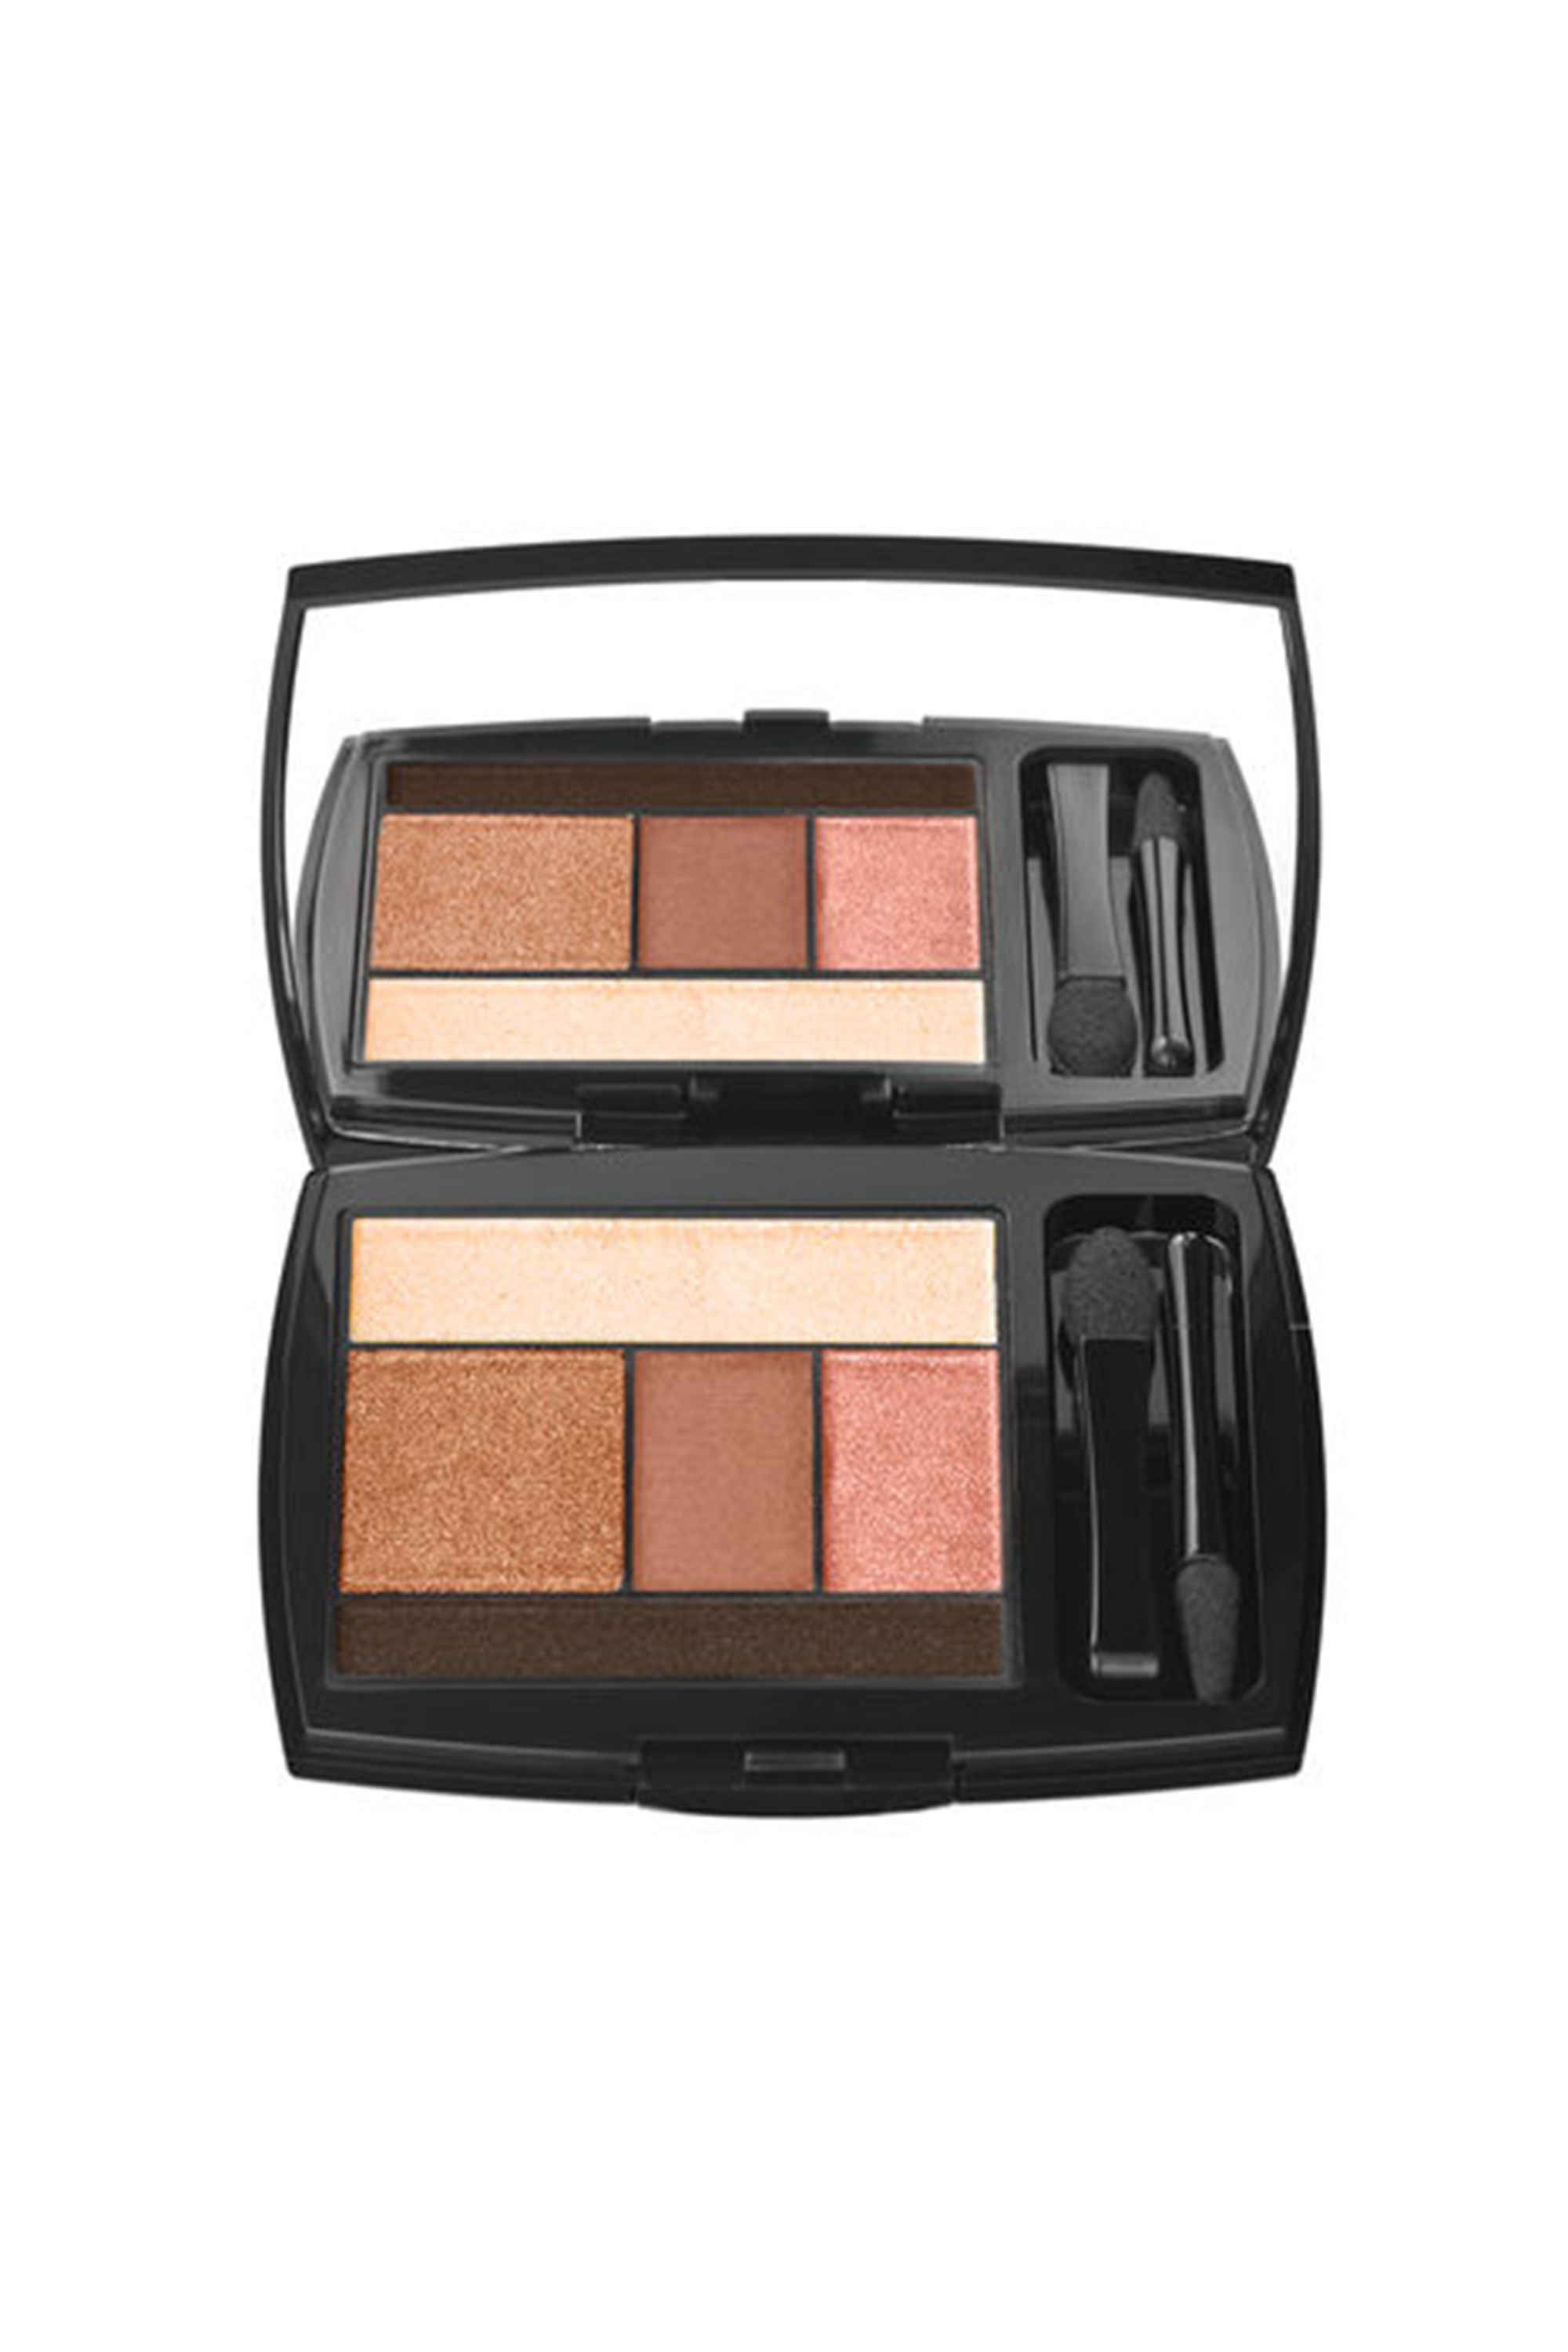 "<p>$50, <a href=""http://www.lancome-usa.com/makeup/eyes/eyeshadow-palettes/color-design-5-pan-eyeshadow-palette/LAN50.html"" target=""_blank"" data-tracking-id=""recirc-text-link"">lancome-usa.com</a></p>"